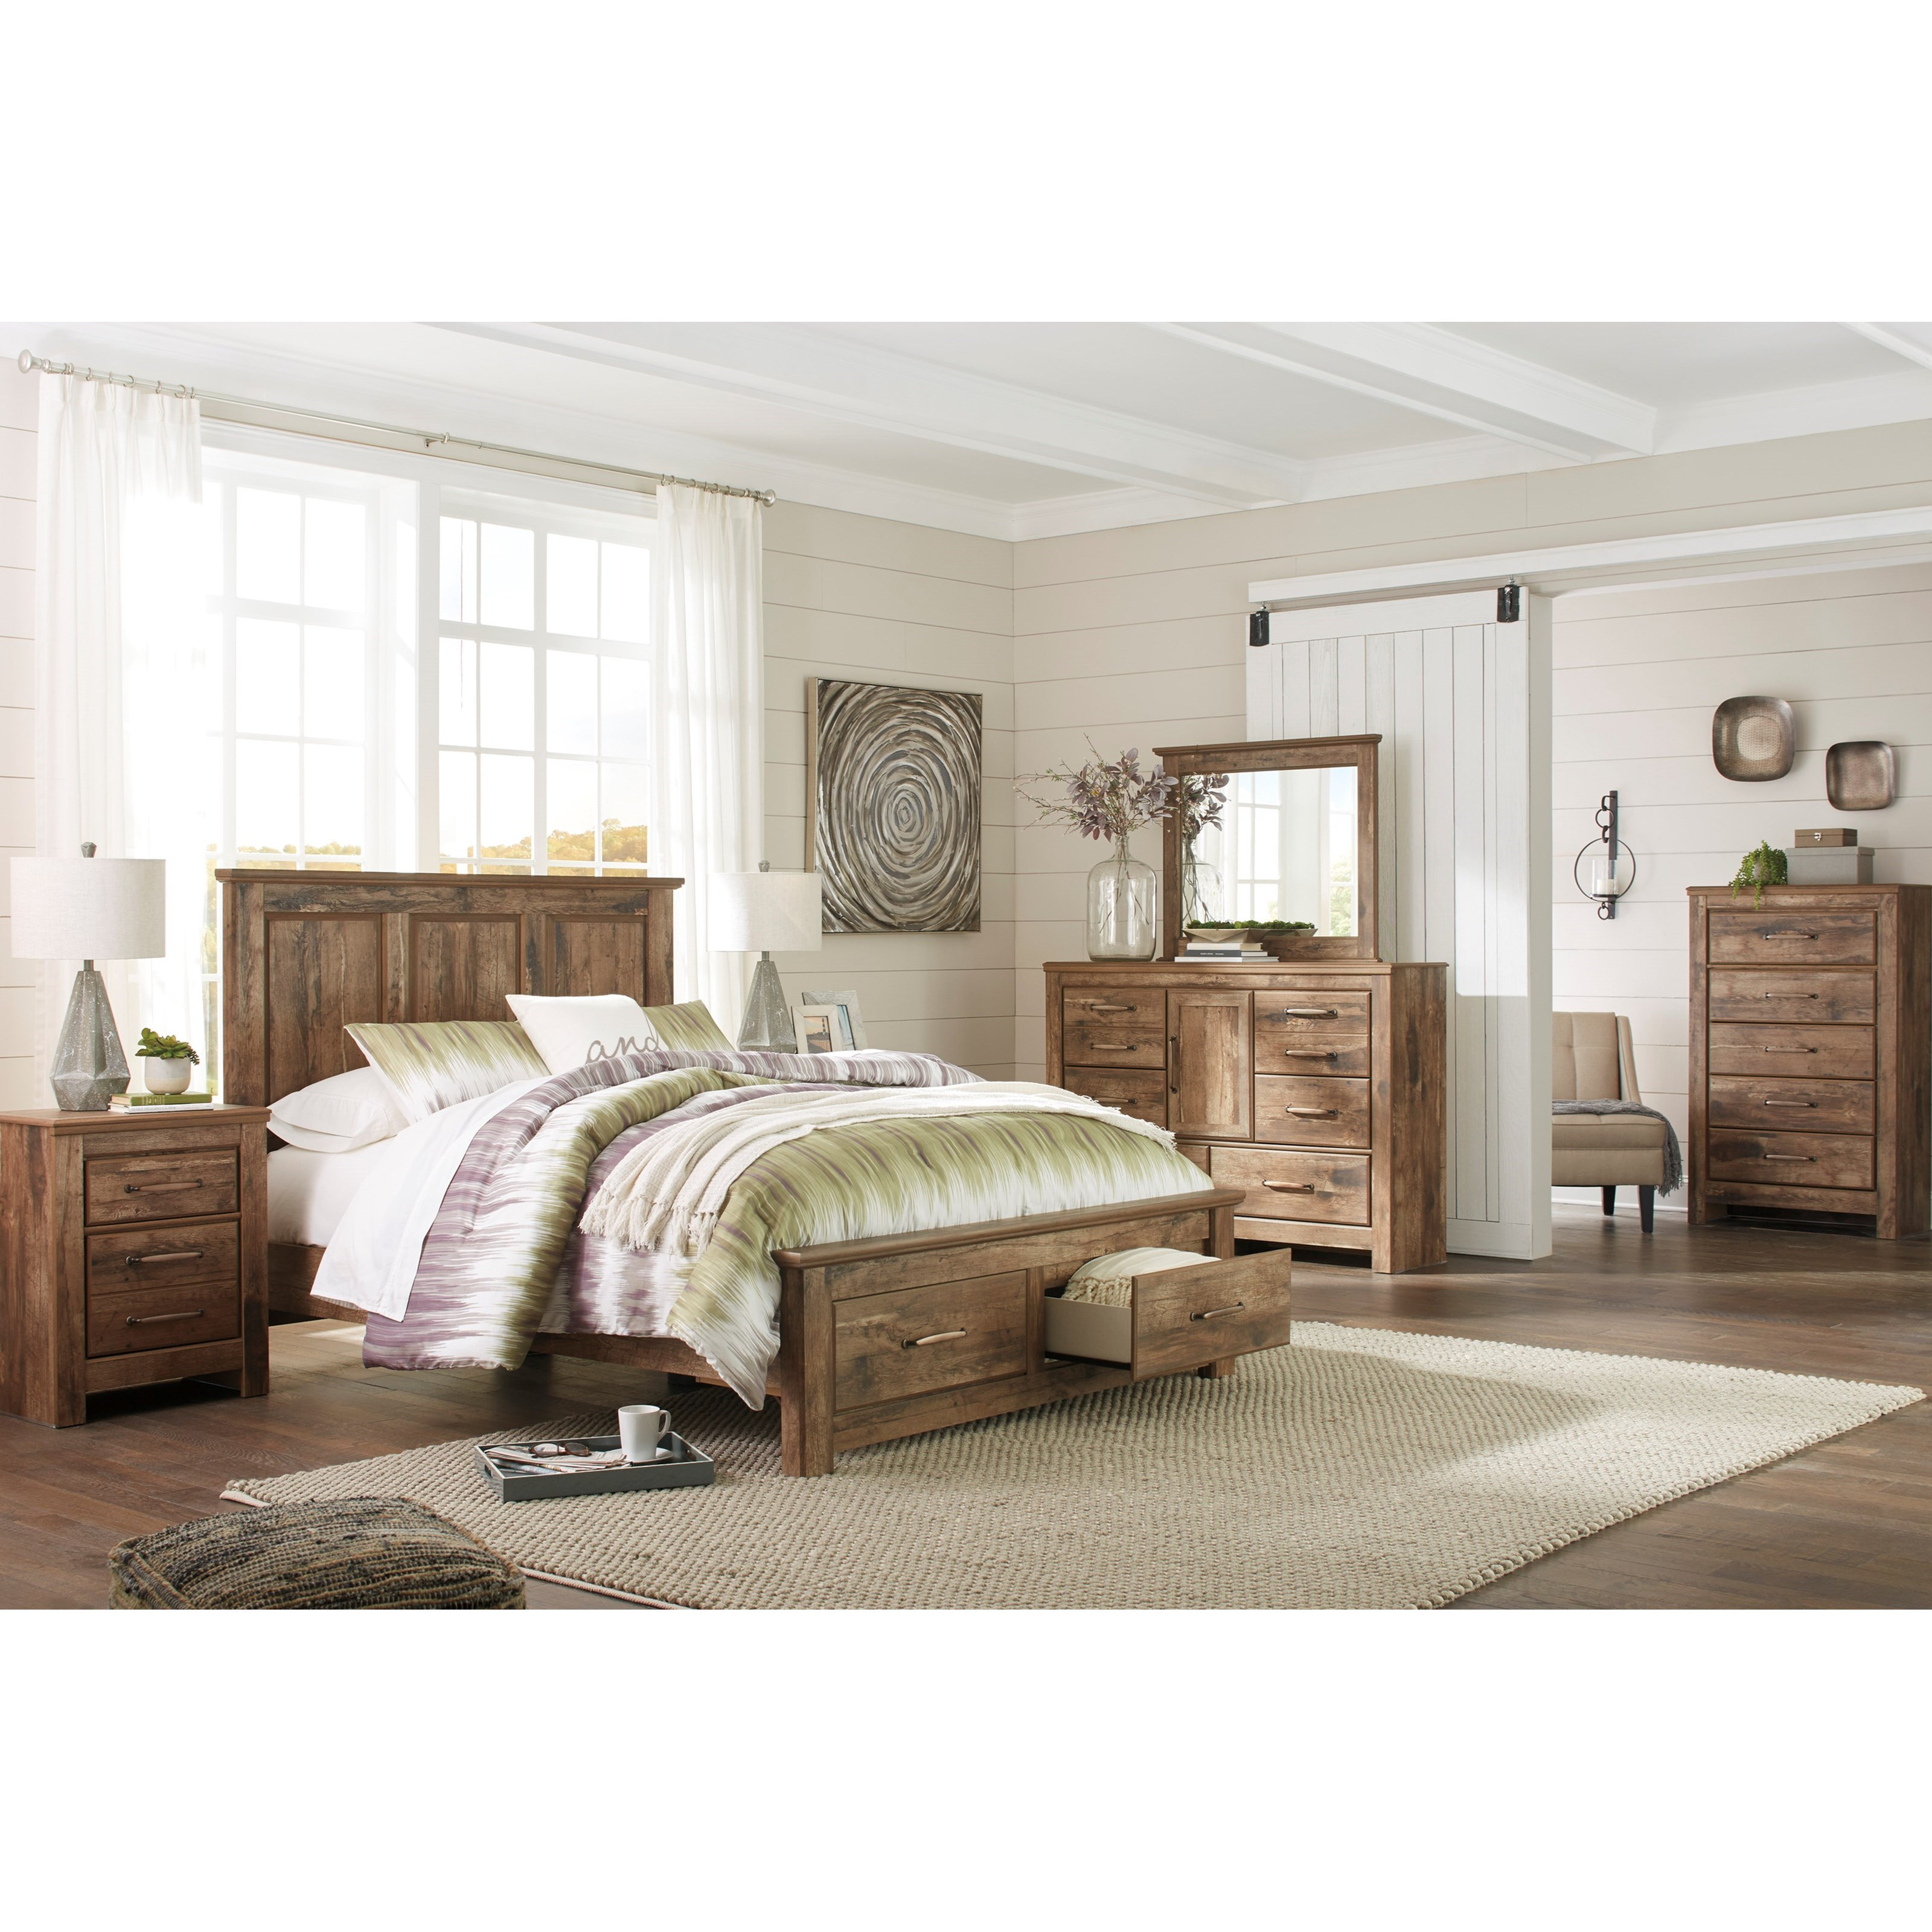 Signature Design By Ashley Blaneville Rustic Style Queen Panel Storage Bed Value City